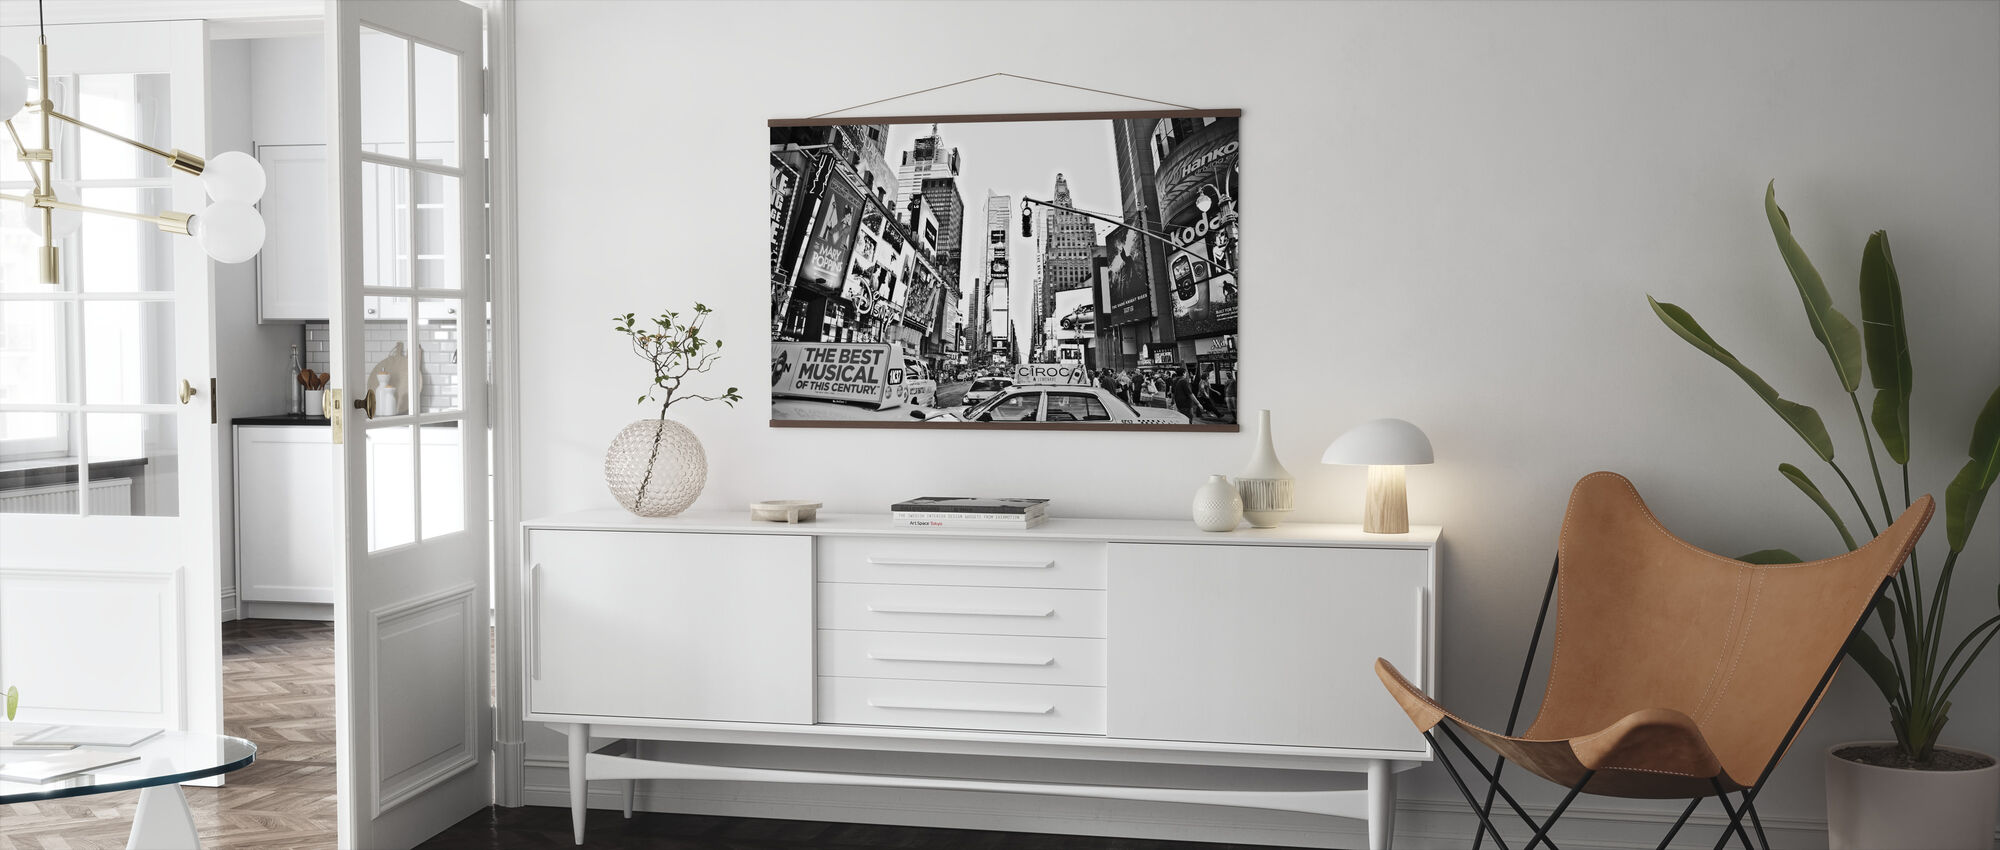 Cabines in Times Square, New York - Poster - Woonkamer